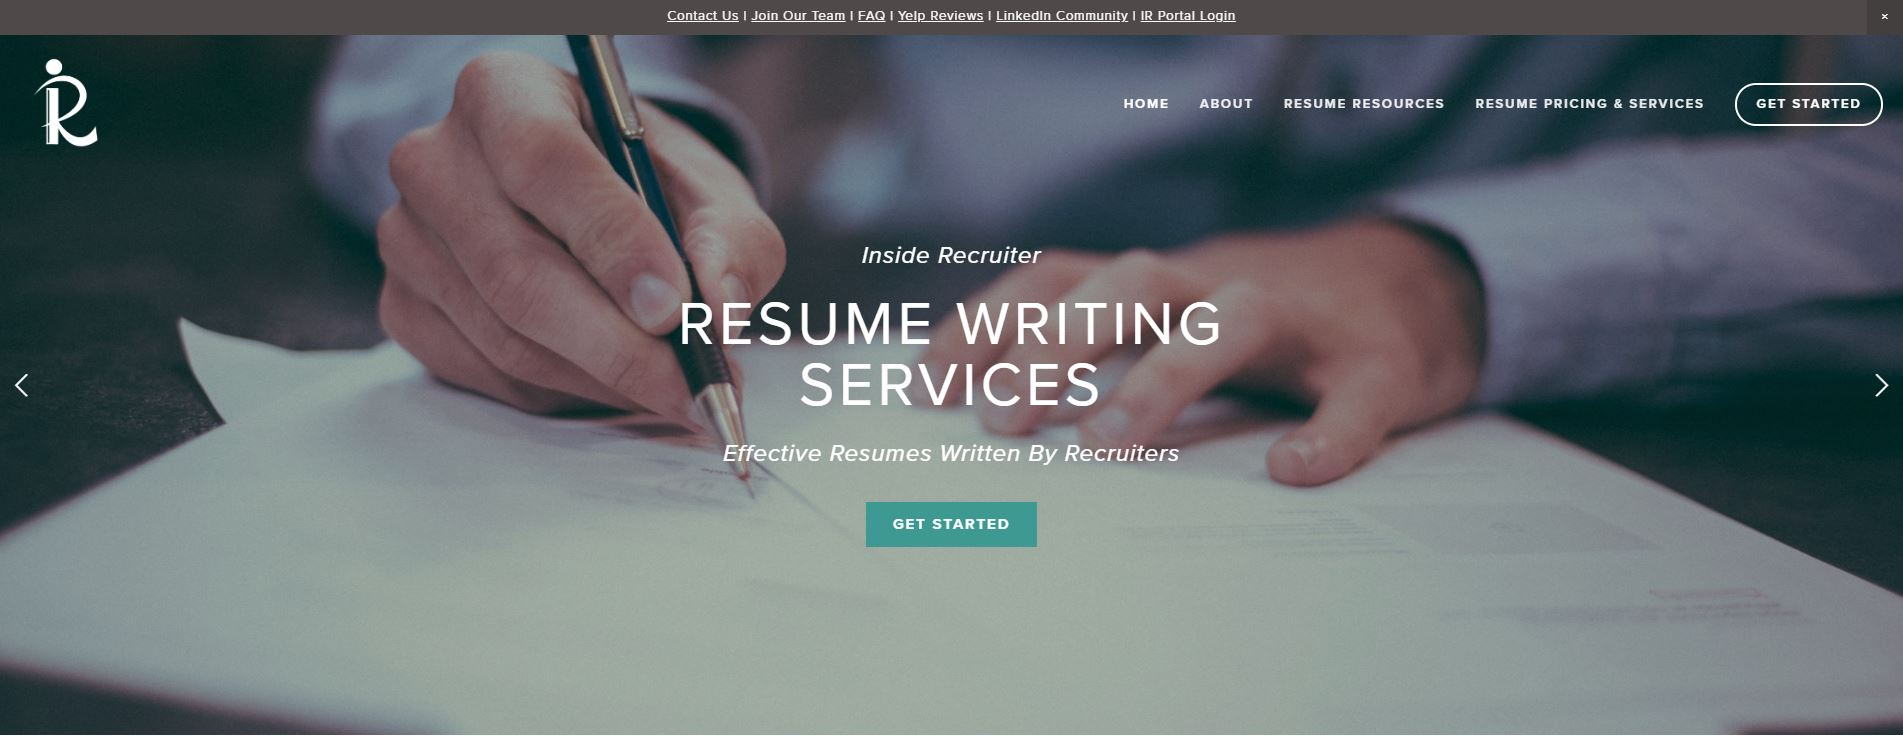 Best Sales Resume Services for 2020 - Screenshot of Inside Recruiter Homepage